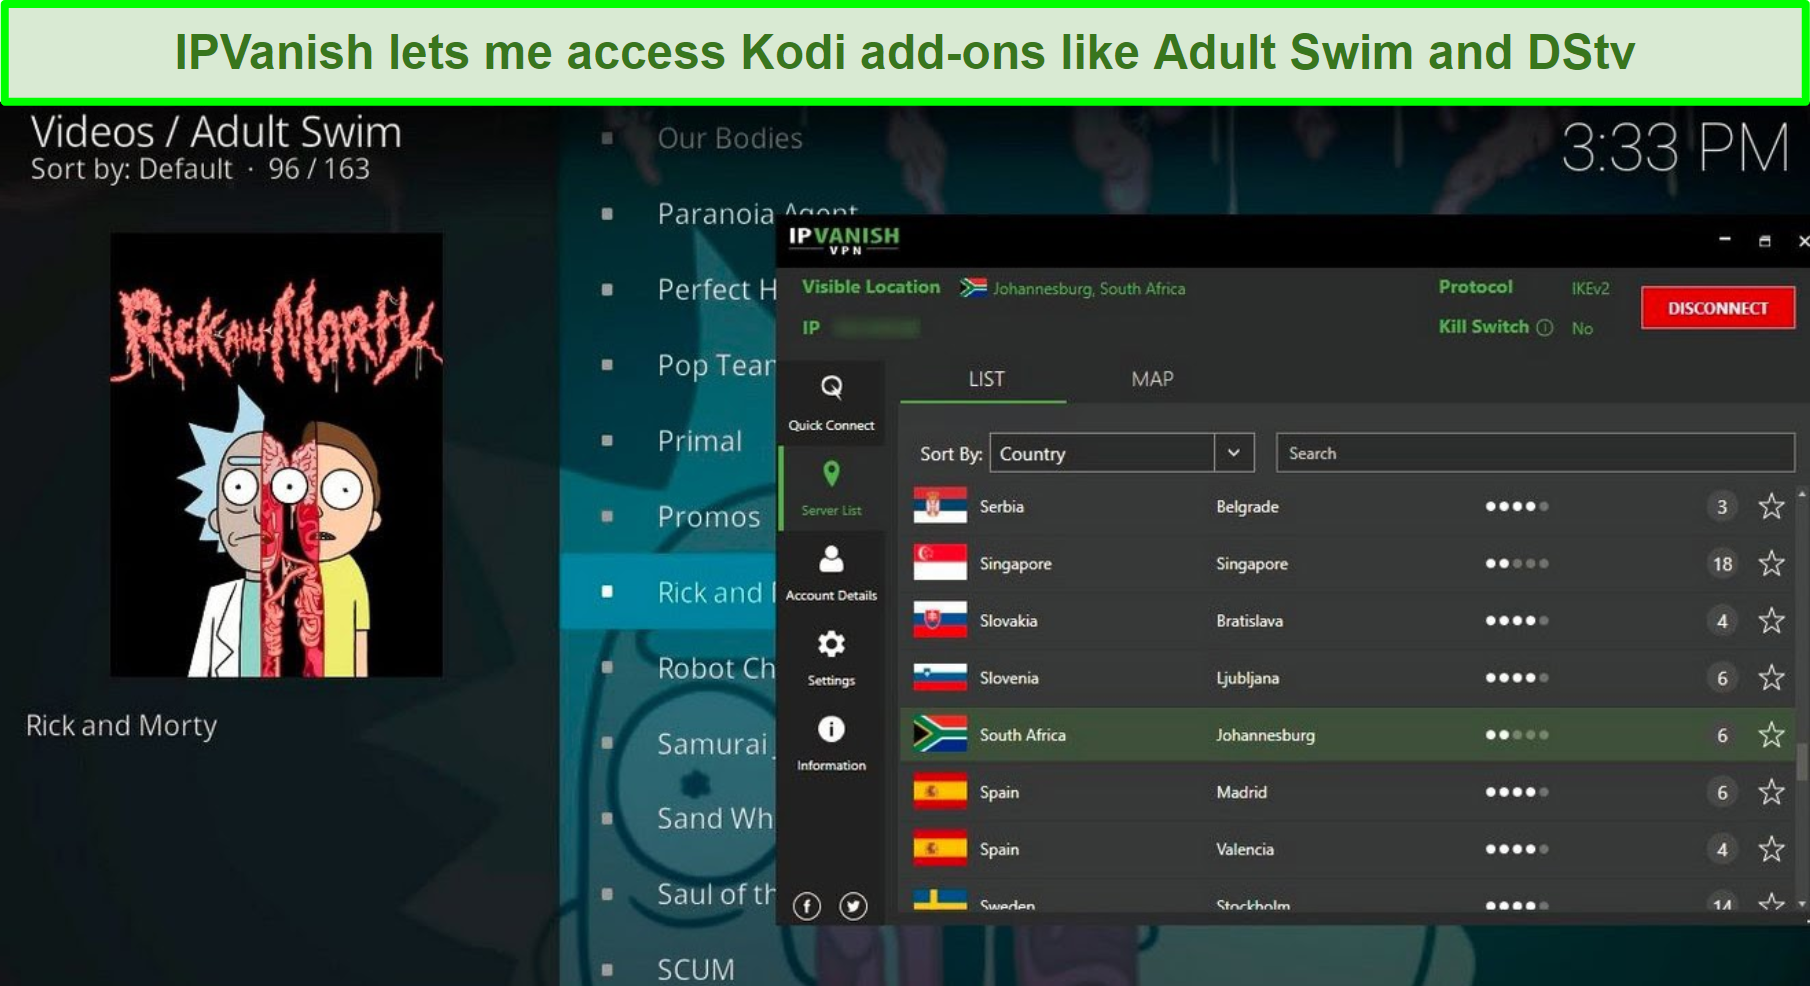 Screenshot of IPVanish interface and Kodi interface, showing the Adult Swim add-on while connected to South Africa